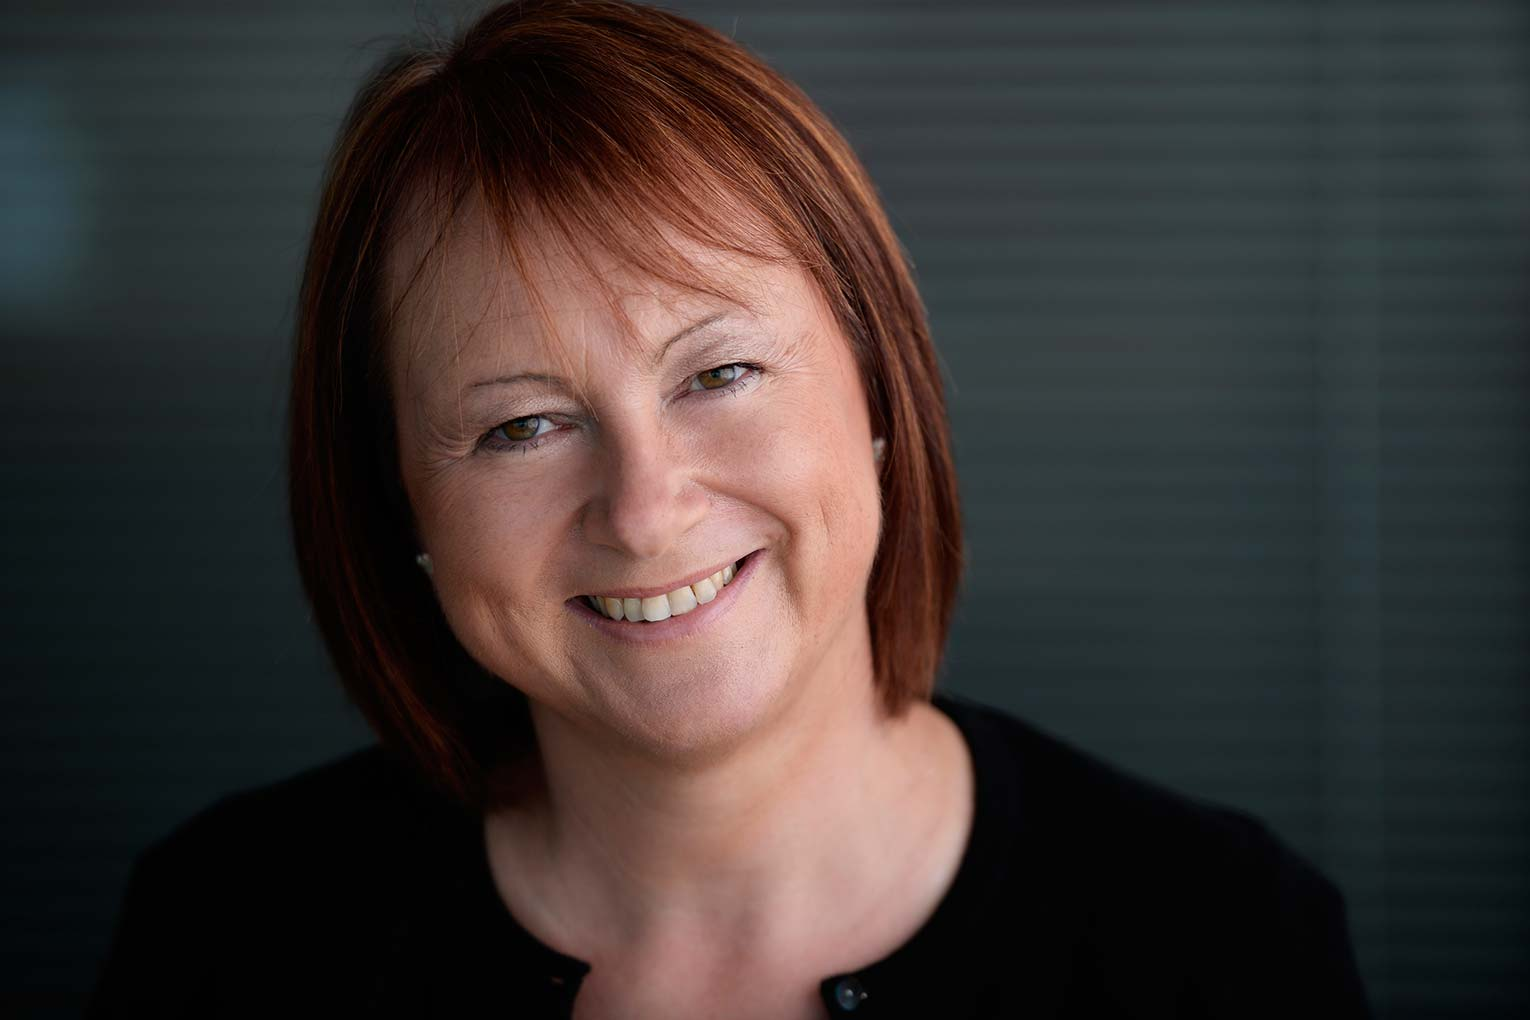 BFS appoints UK commercial director